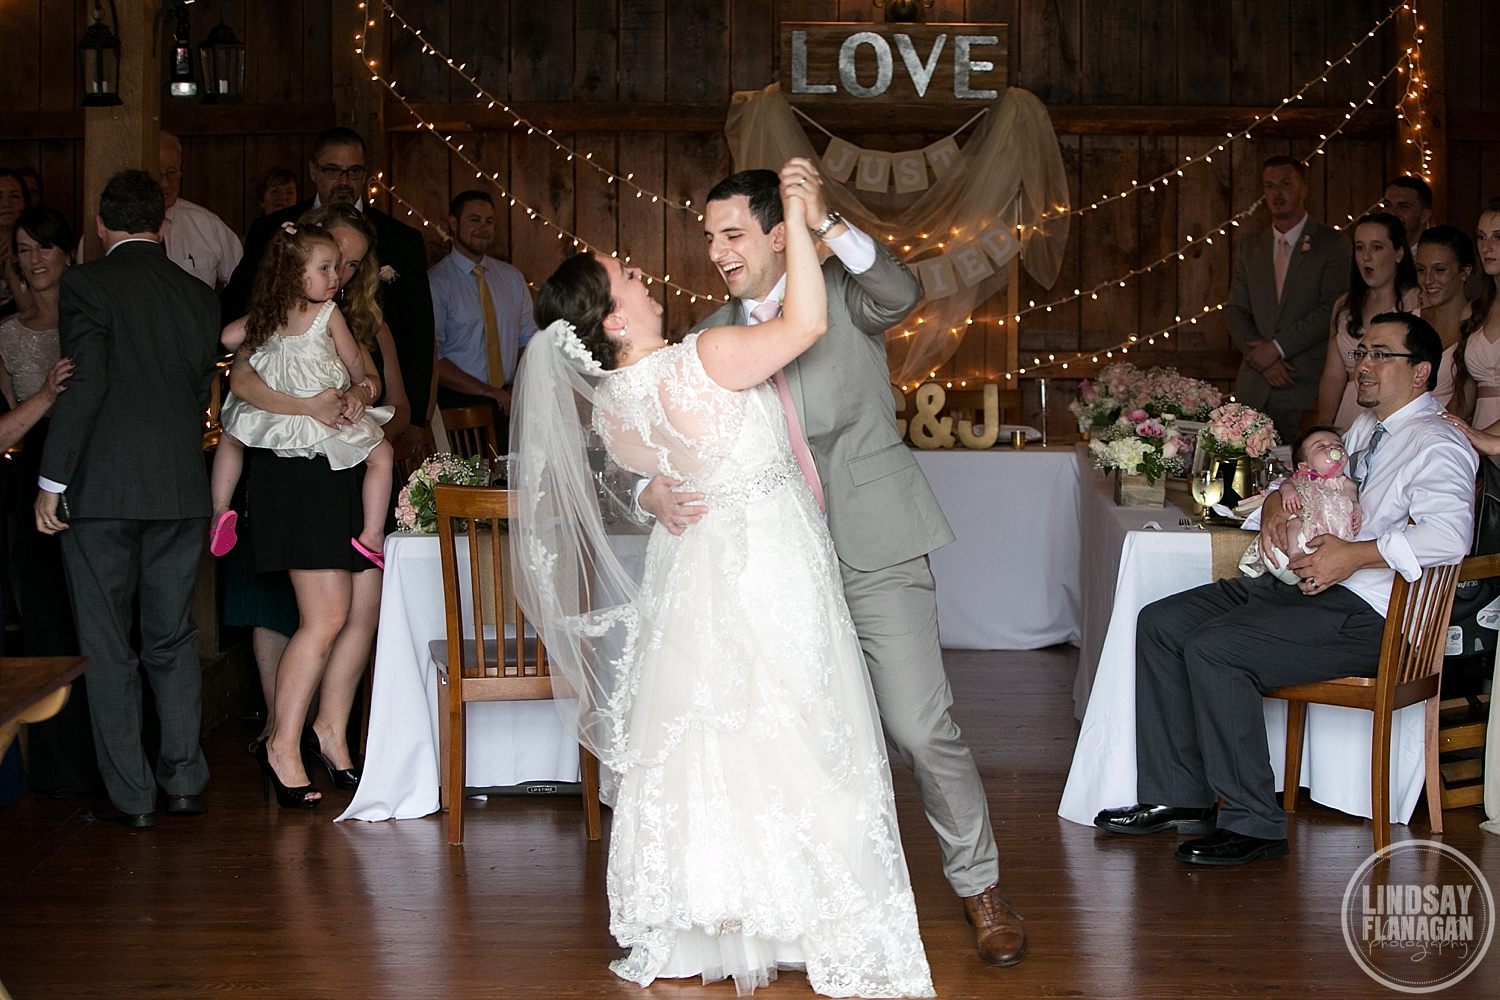 Barn-Boyden-Farm-Vermont-Summer-Wedding-Reception